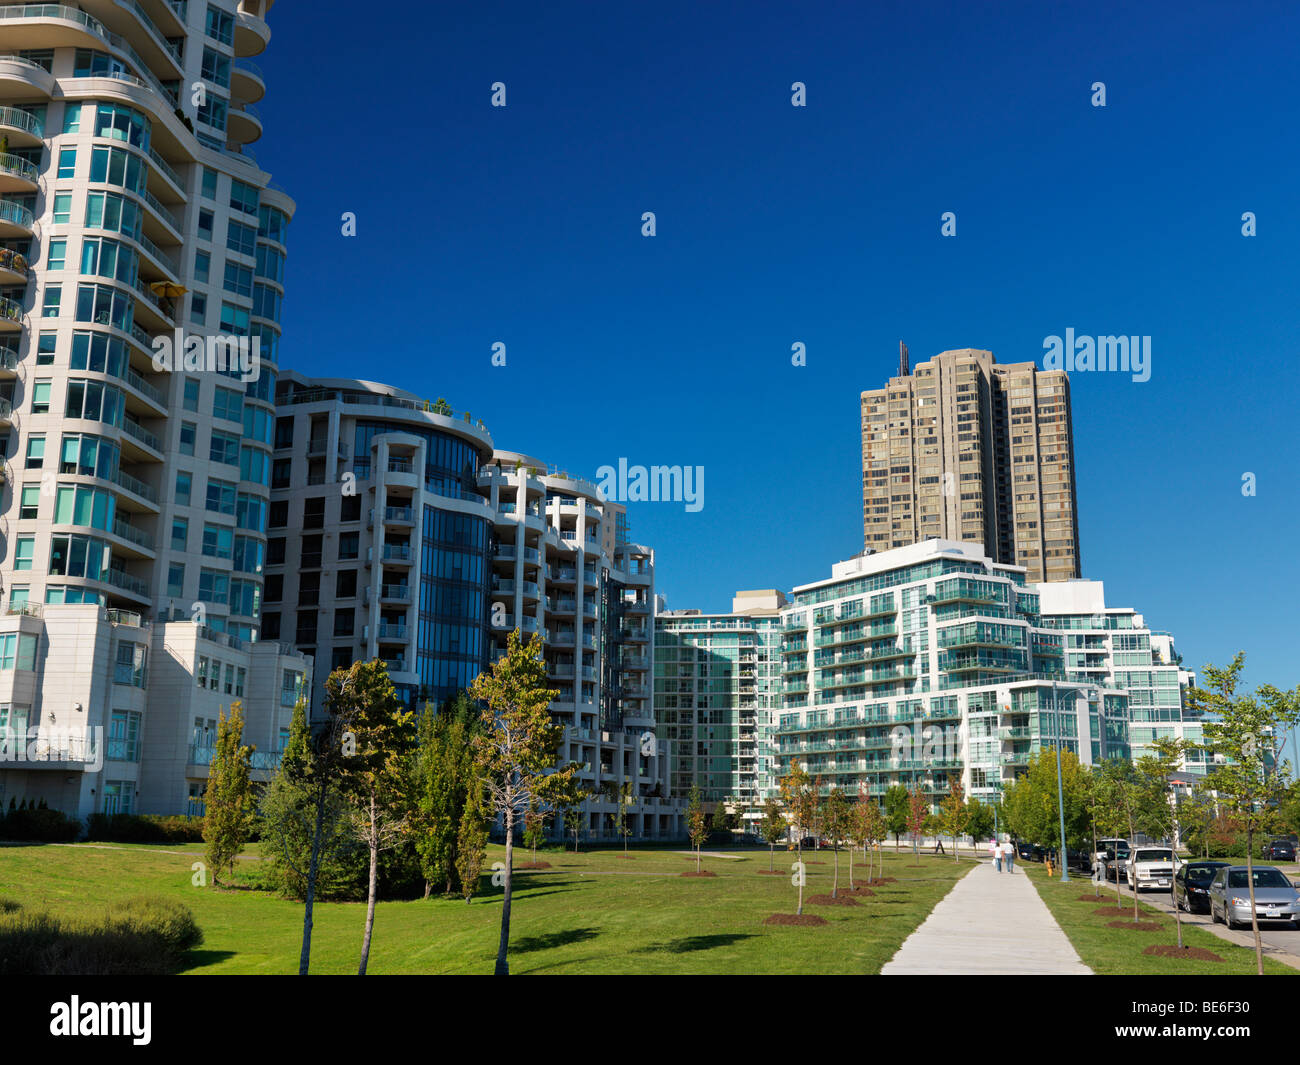 Upscale condo buildings in a new residential neighbourhood - Stock Image